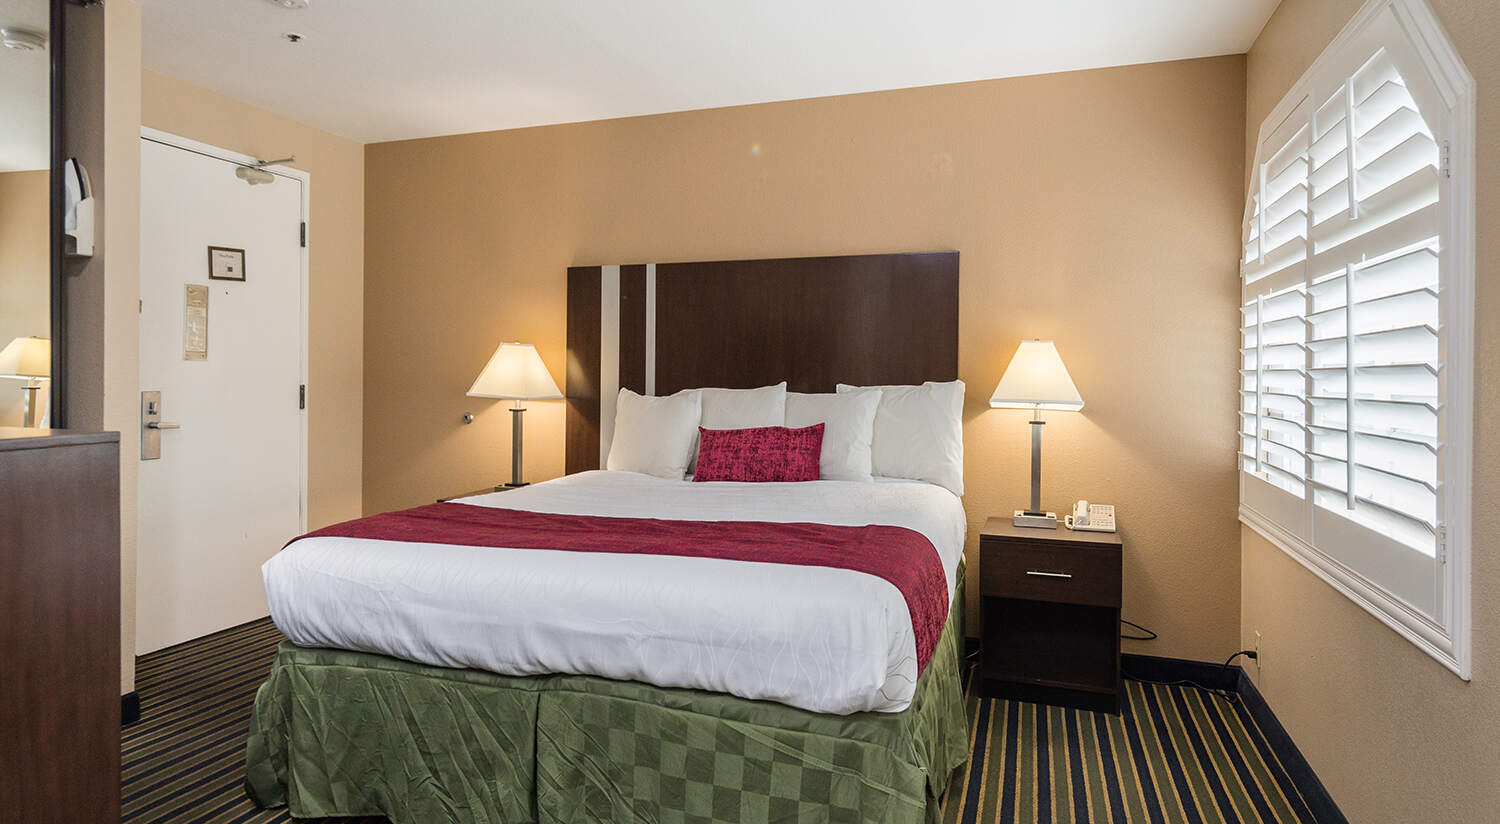 THE TRAVEL INN SUNNYVALE IS A PERFECT SILICON VALLEY CORPORATE HOTEL OFFERING PLUSH KING SIZE BEDROOMS FOR BUSINESS TRAVELERS